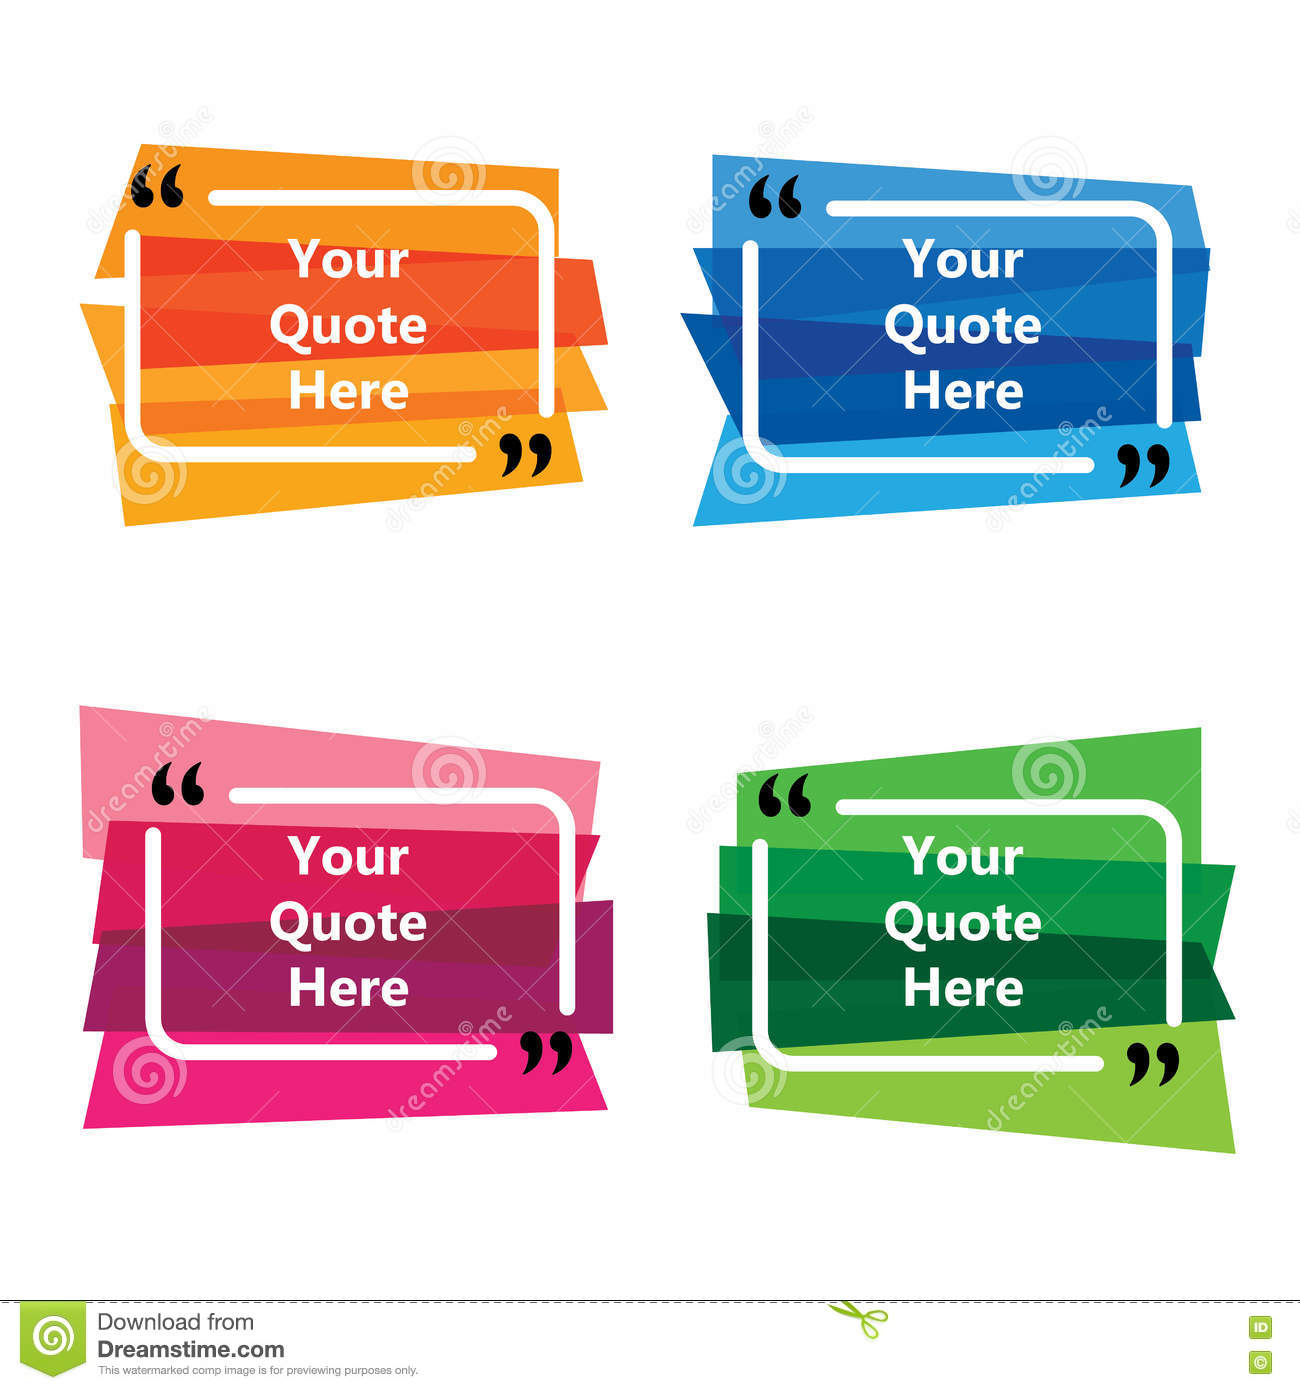 business communication quote templates vector graphic collecti business communication quote templates vector graphic collecti